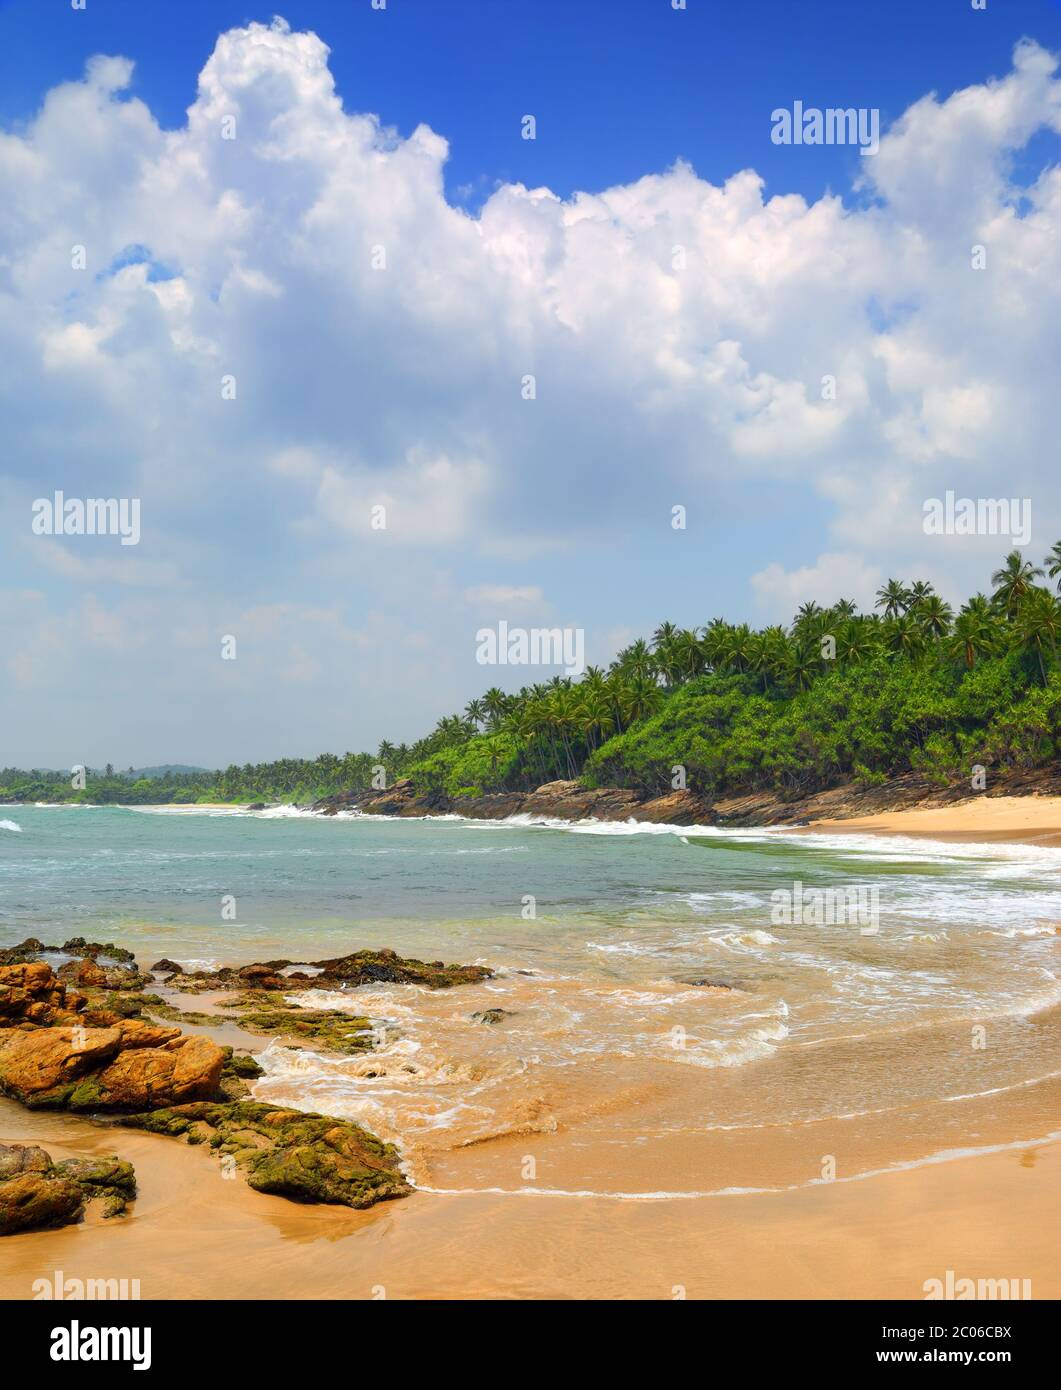 sea waves on tropical beach with stones and rocks Stock Photo